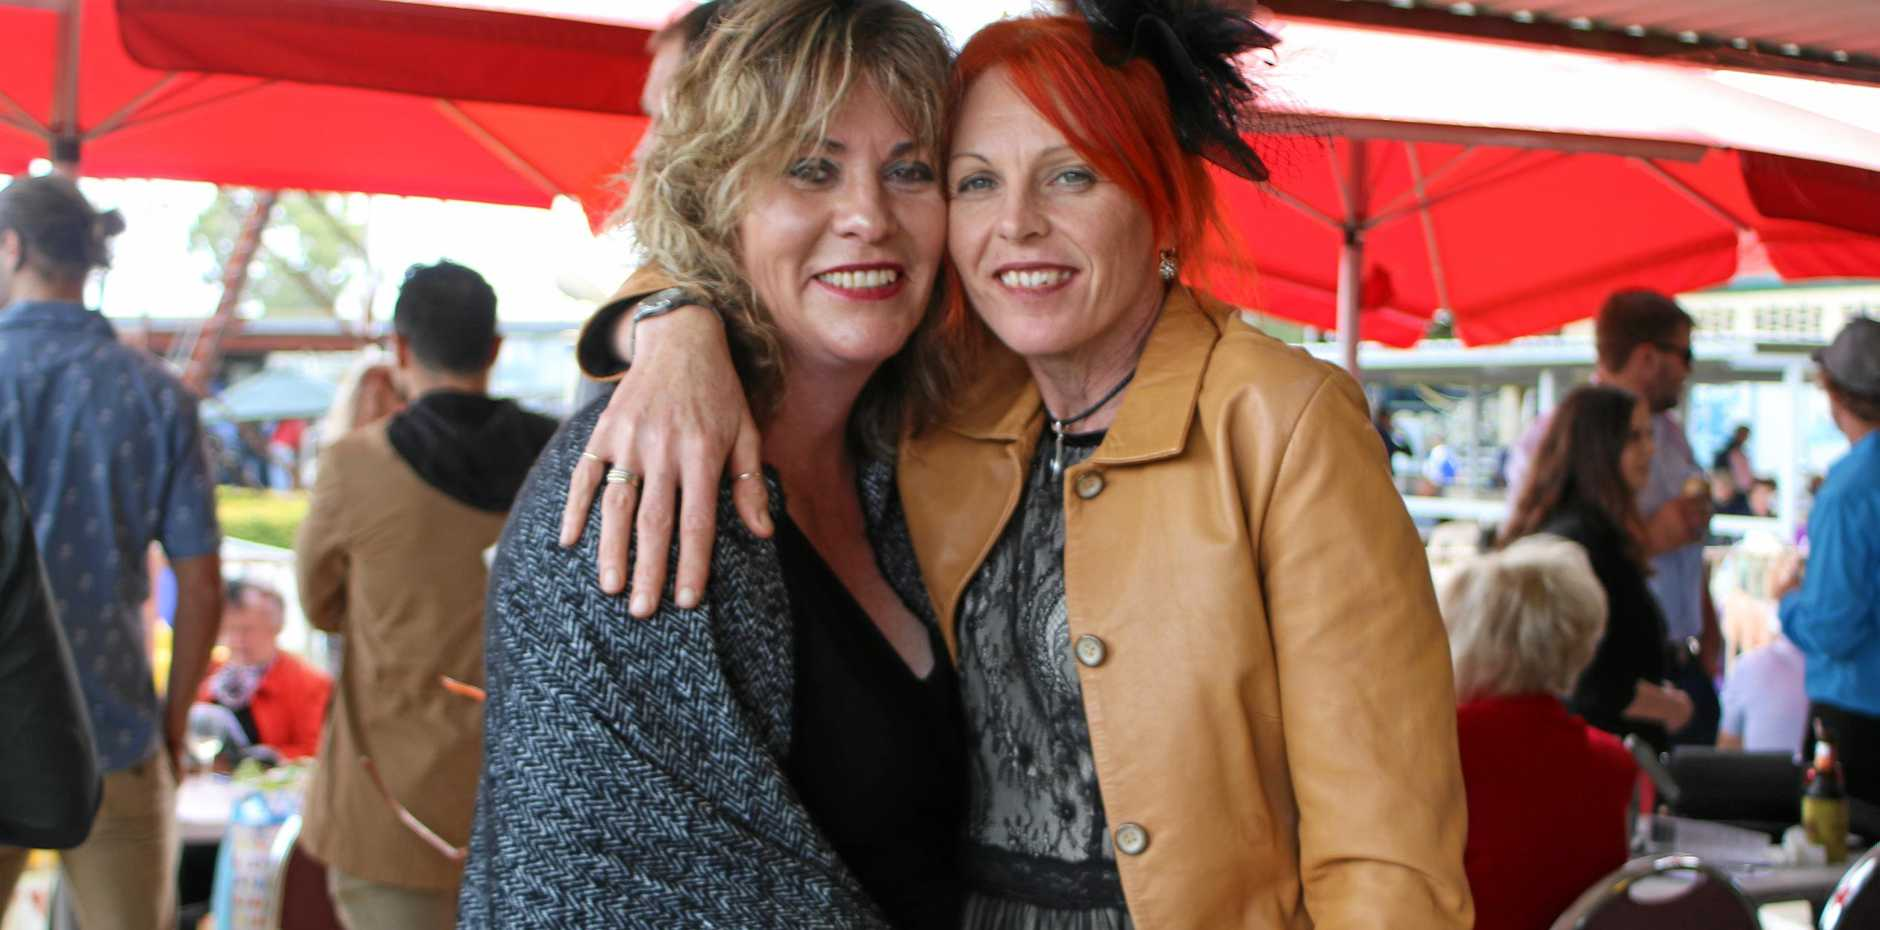 HORSIN' AROUND: Killarney residents Kelli Matthews and Jackie Hilton catch up at 2016's Cup.